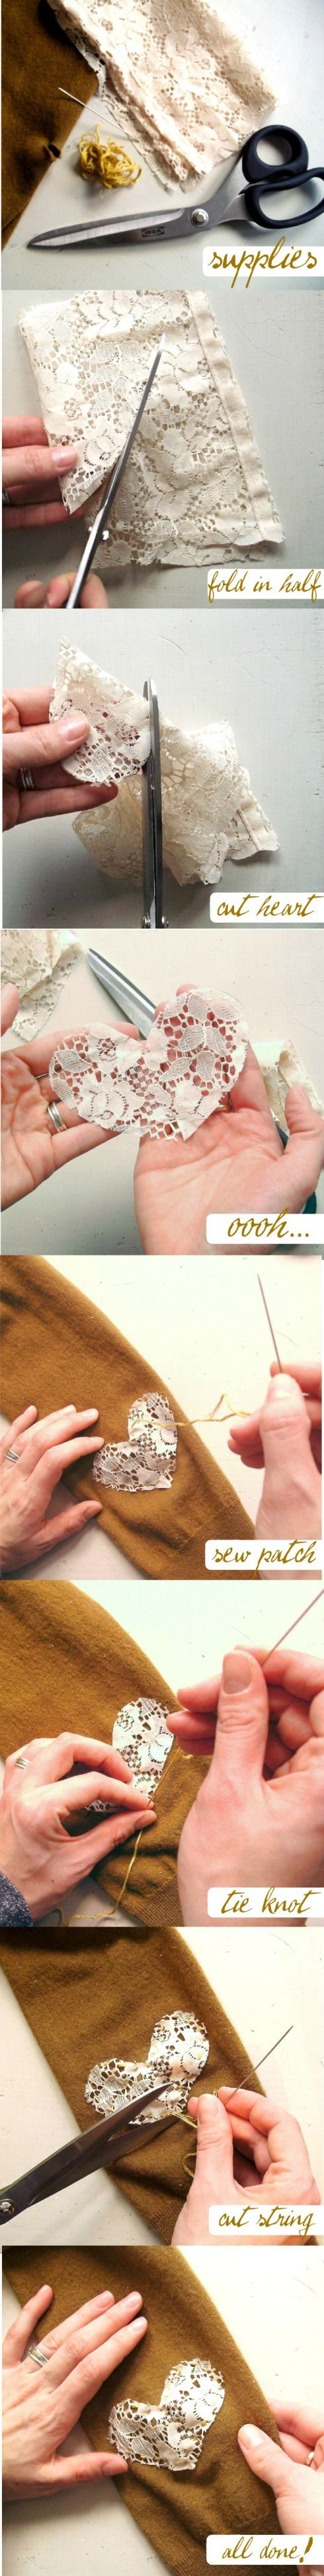 DIY Lacy Heart Patch